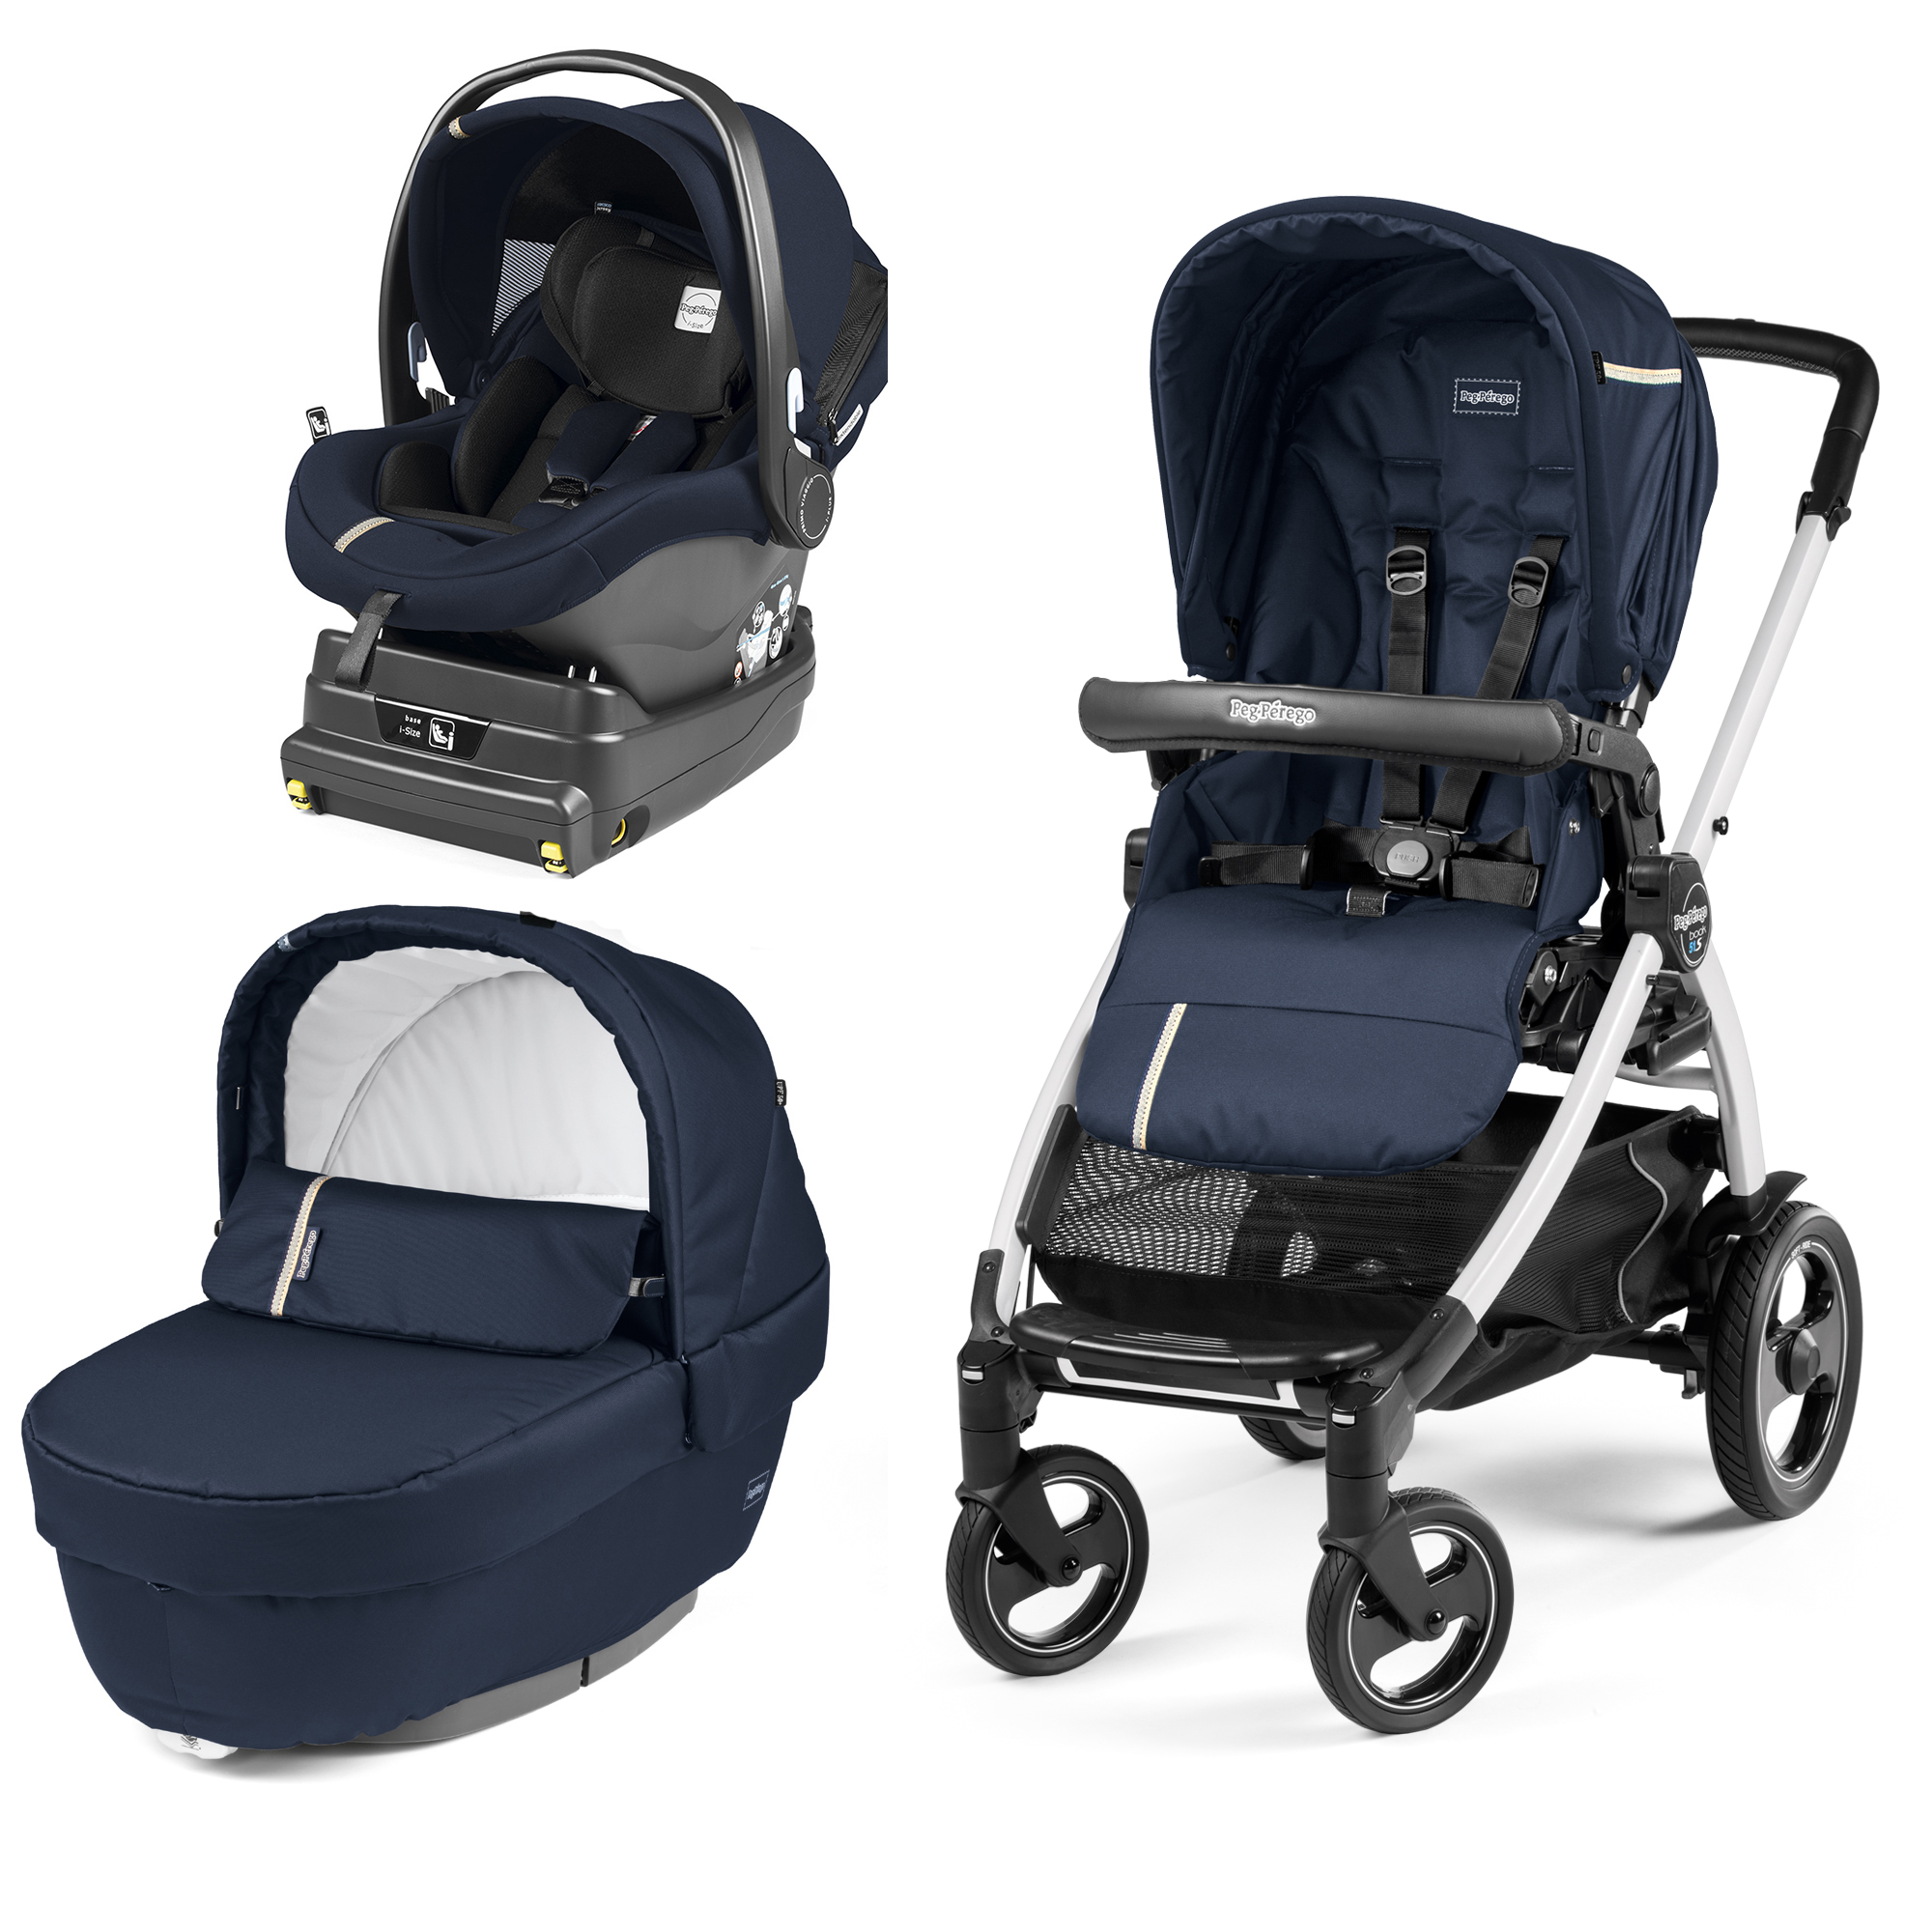 Carucior 3 In 1, Peg Perego, Book Plus 51 S, Titania White, baza i-Size inclusa, Class Navy